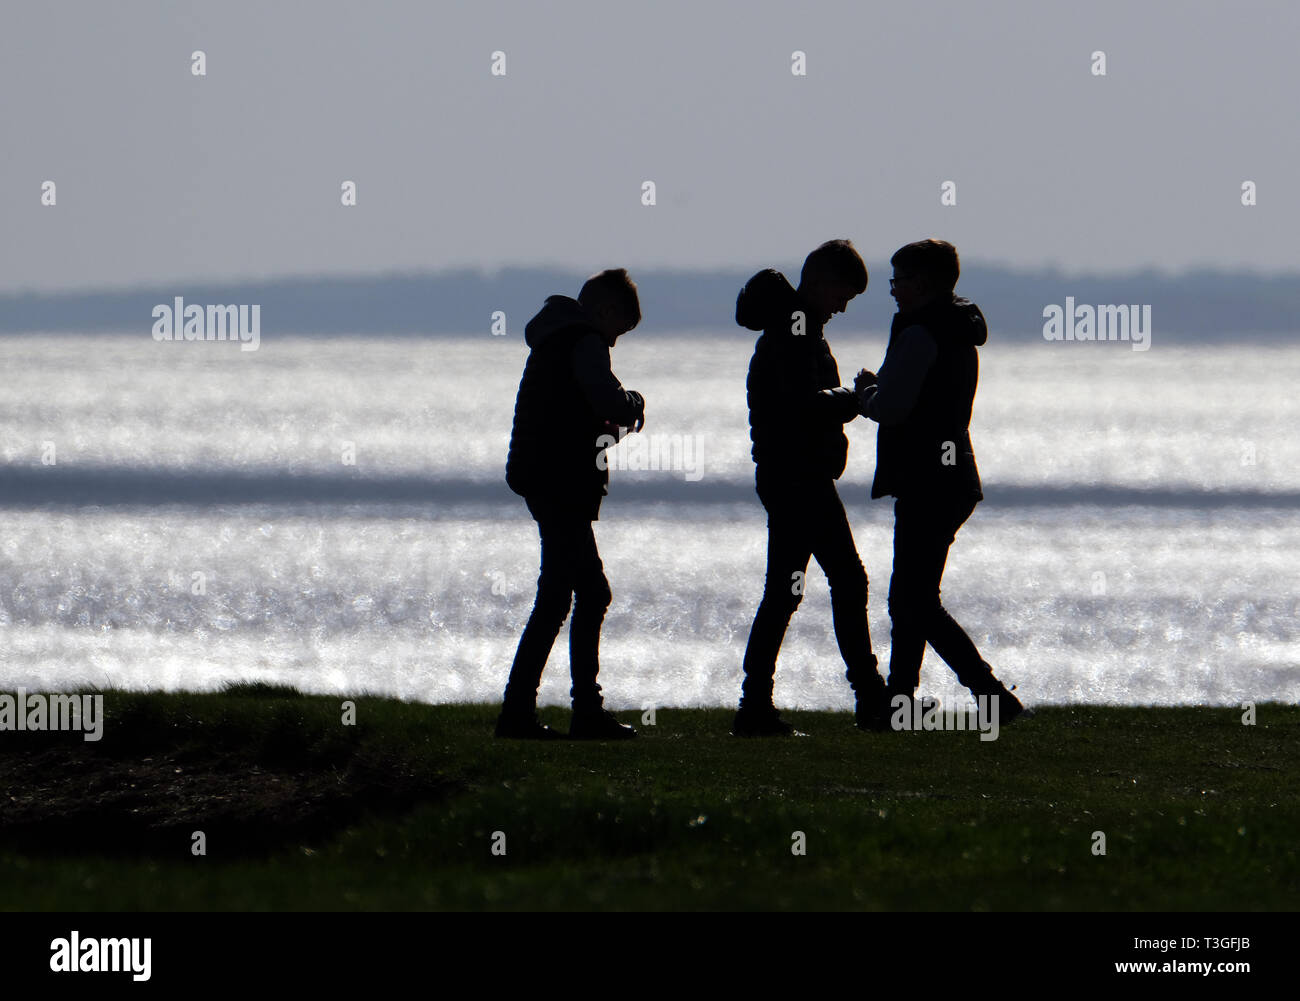 Group of lads in silhouette on cliff top. - Stock Image